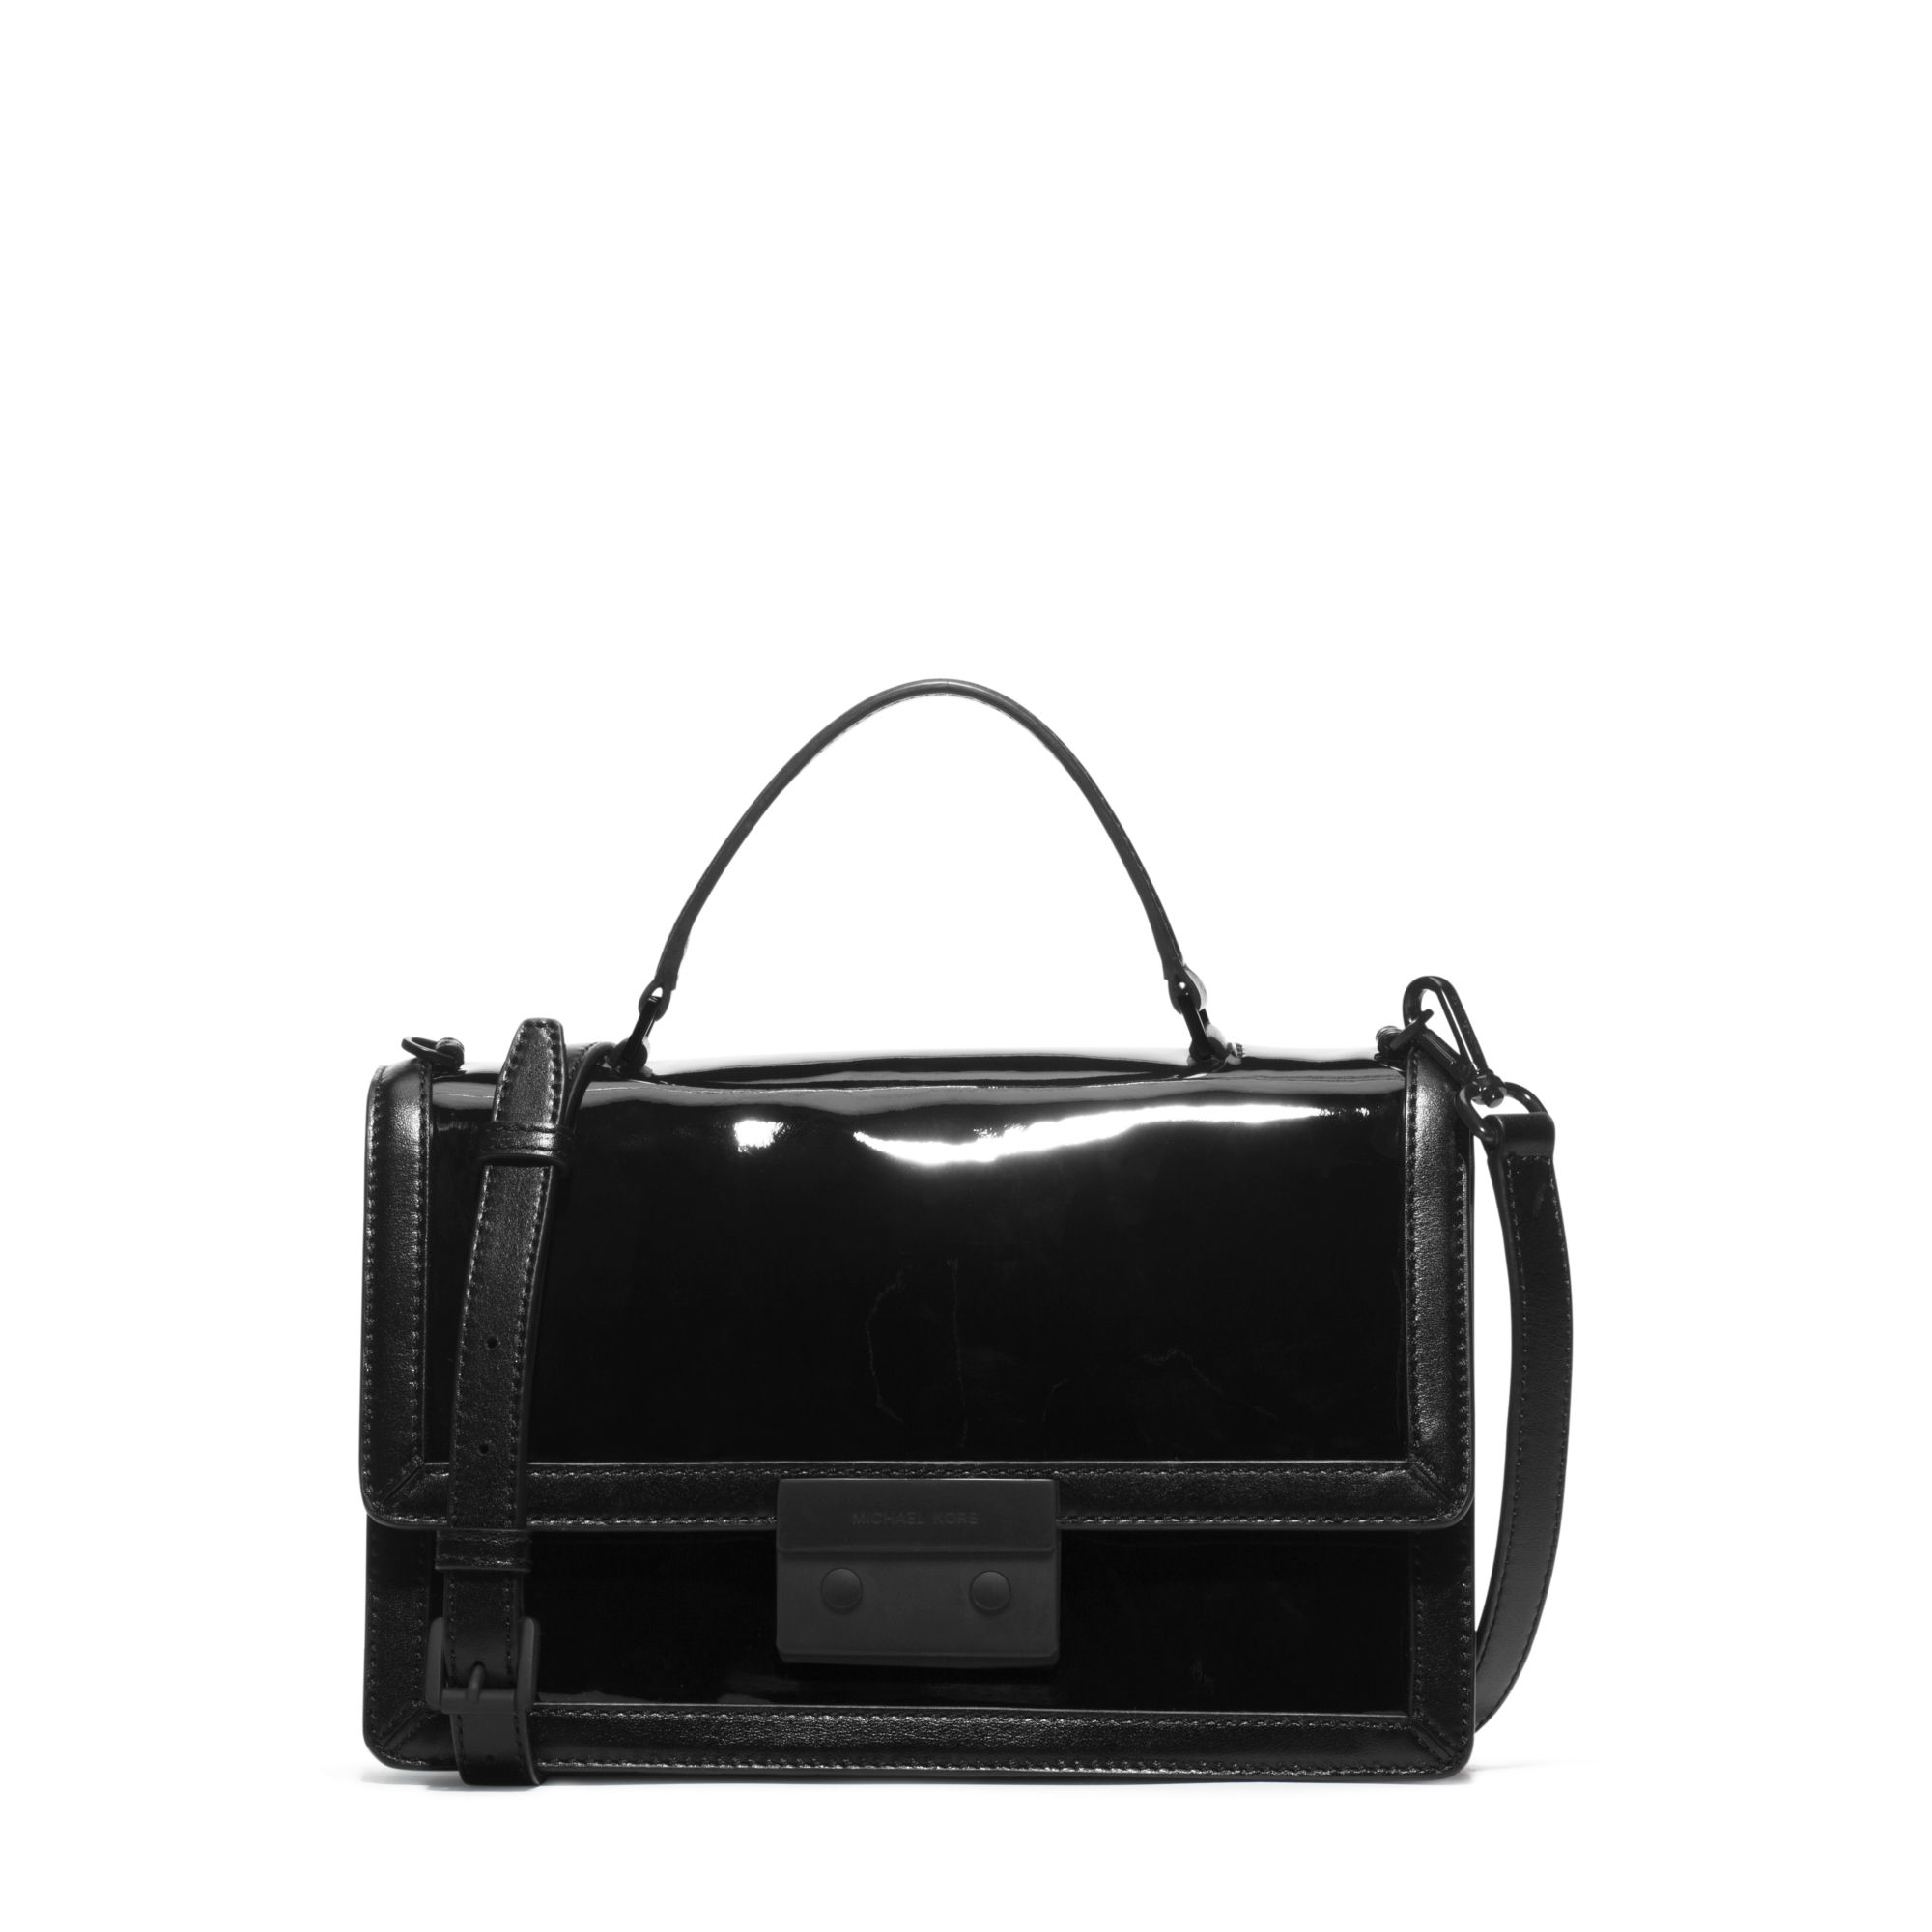 Lyst - Michael Kors Callie Patent-leather Messenger in Black a052fd12e